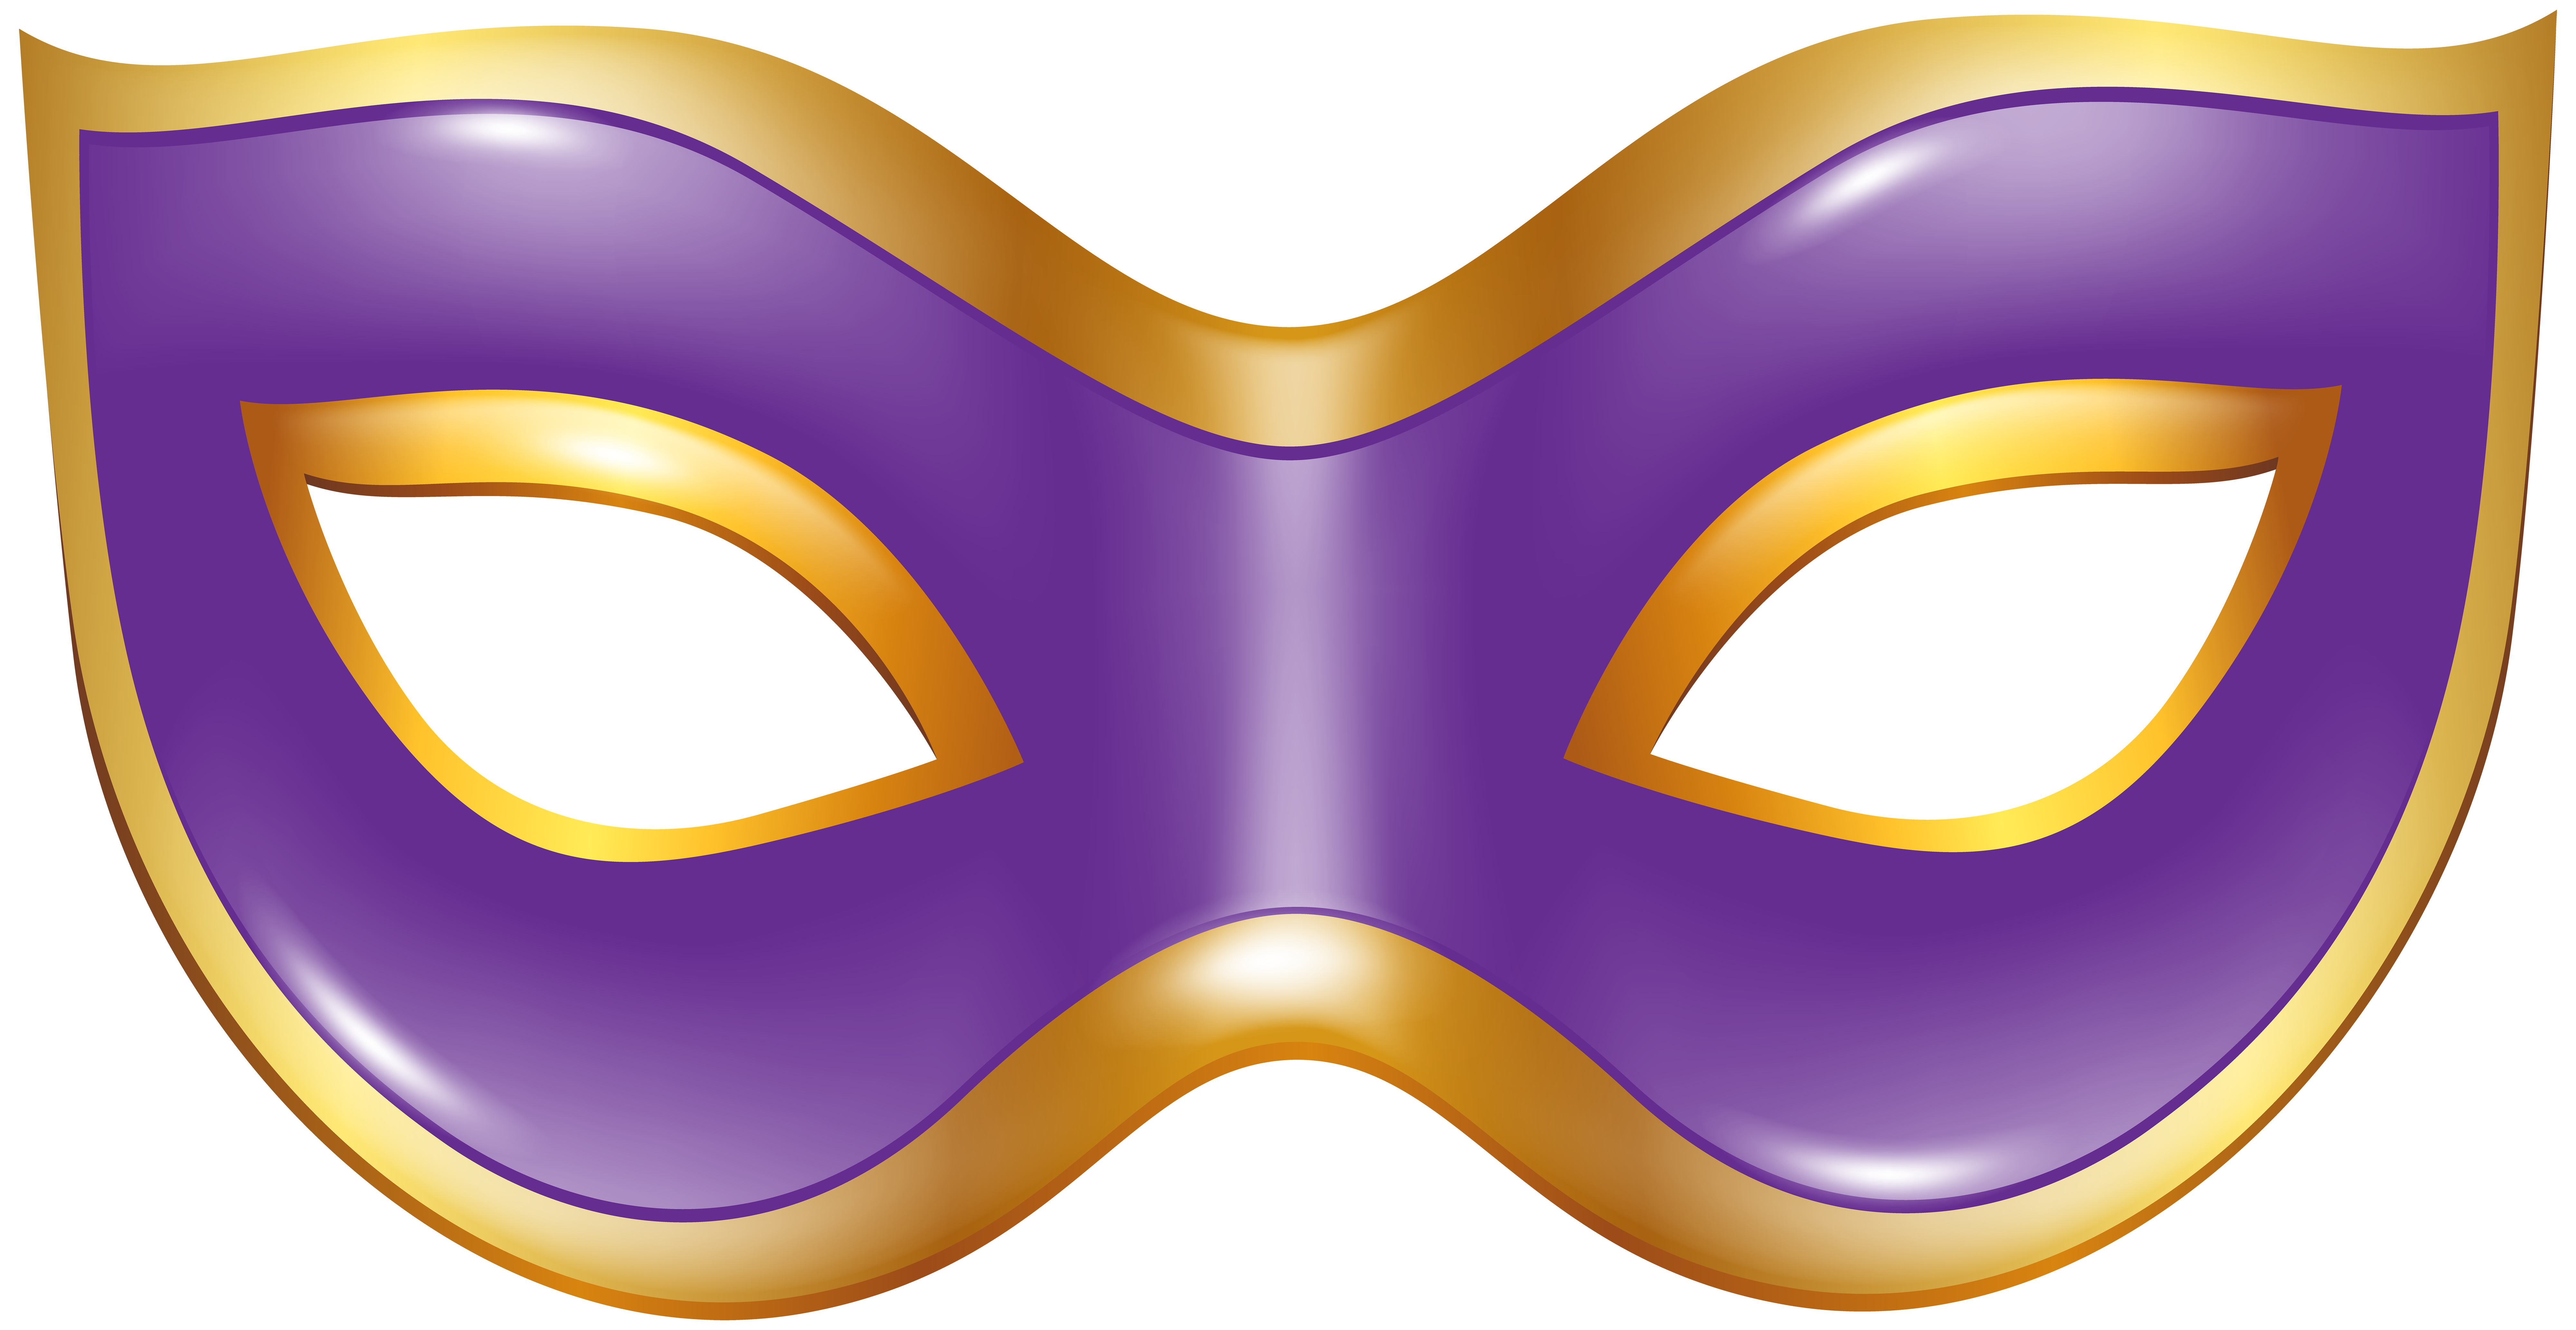 Halloween bunco clipart svg freeuse stock Mardi Gras Mask Clipart at GetDrawings.com   Free for personal use ... svg freeuse stock